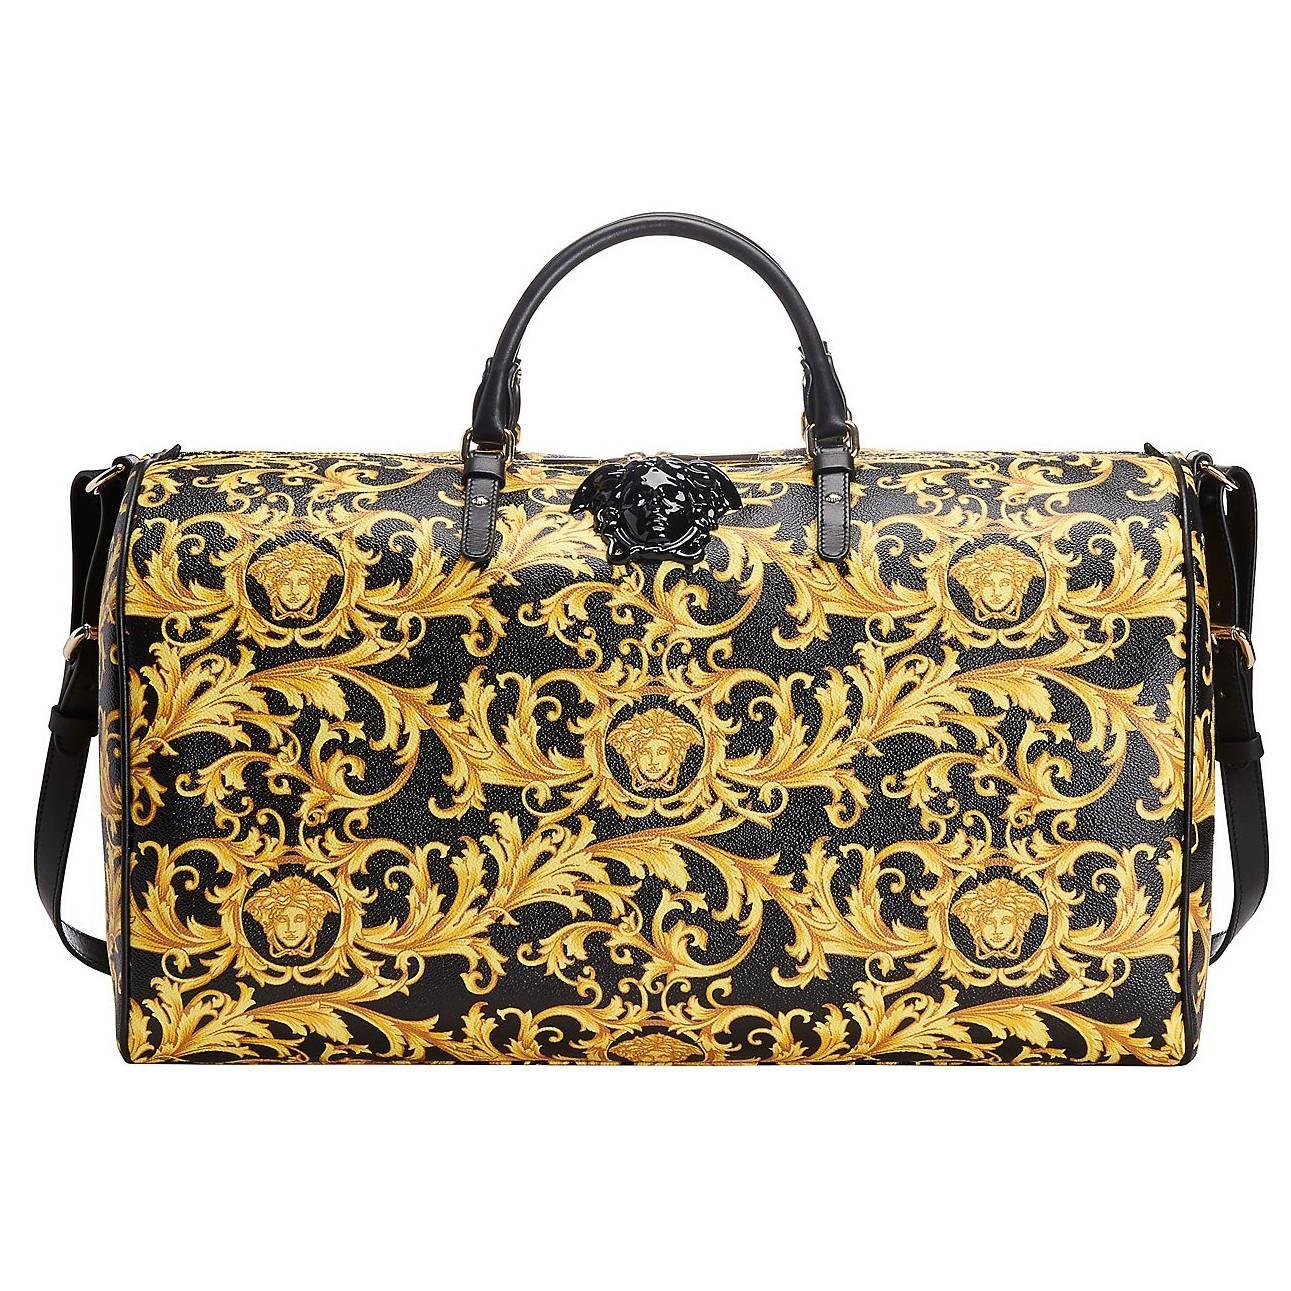 New VERSACE MEDUSA HERITAGE BAROCCO WEEKENDER BAG For Sale ...